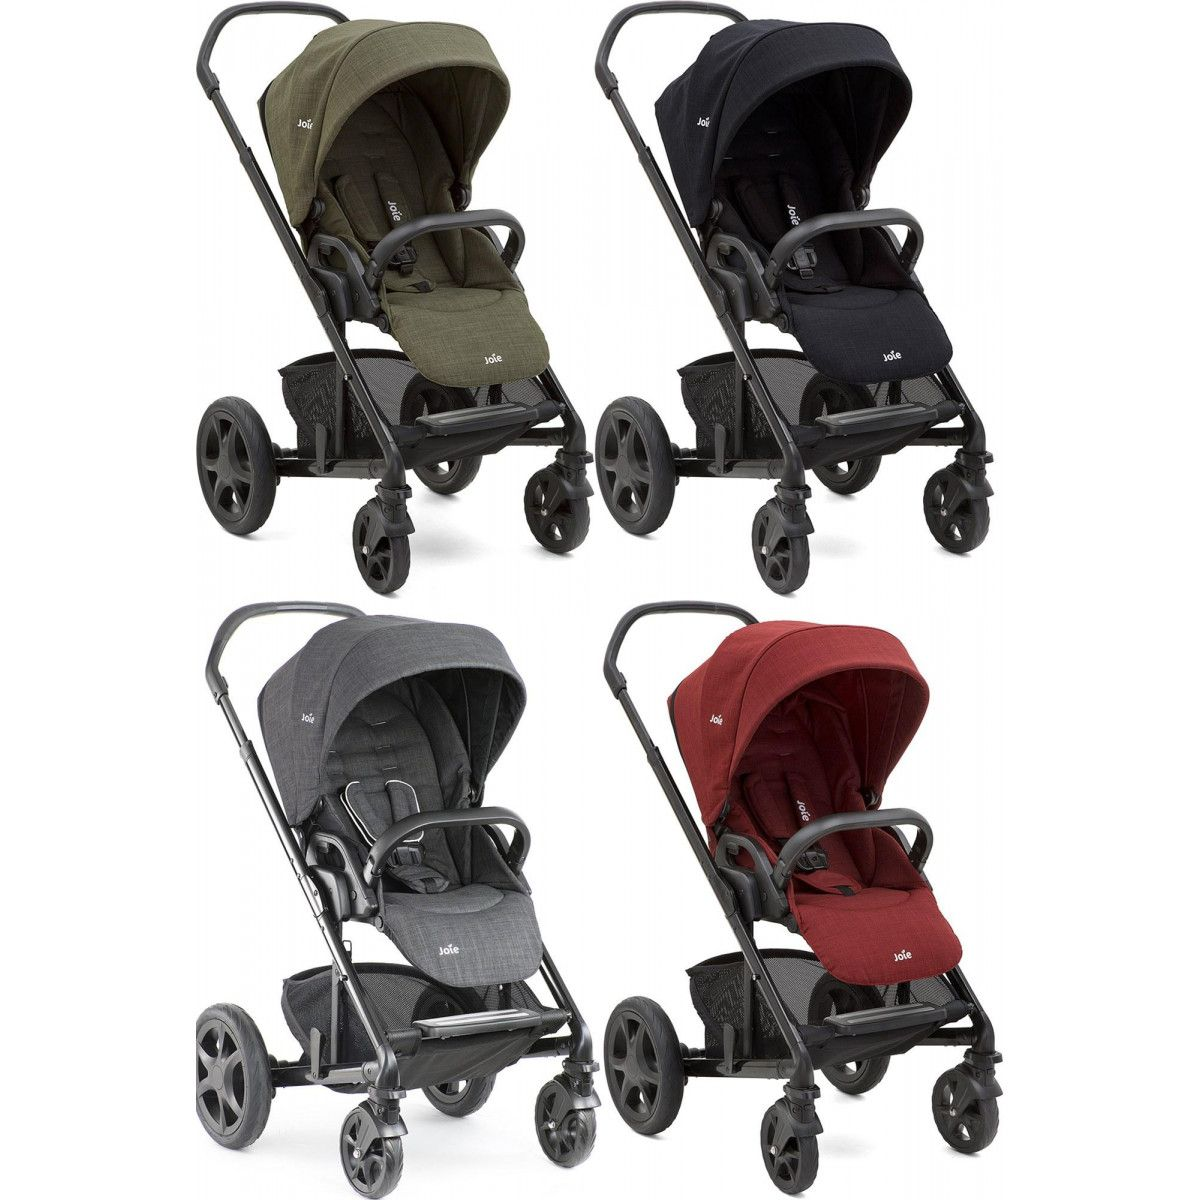 Buggy Board Für Peg Perego Book Joie Chrome Dlx Pushchair Travel Systems Baby Stroller